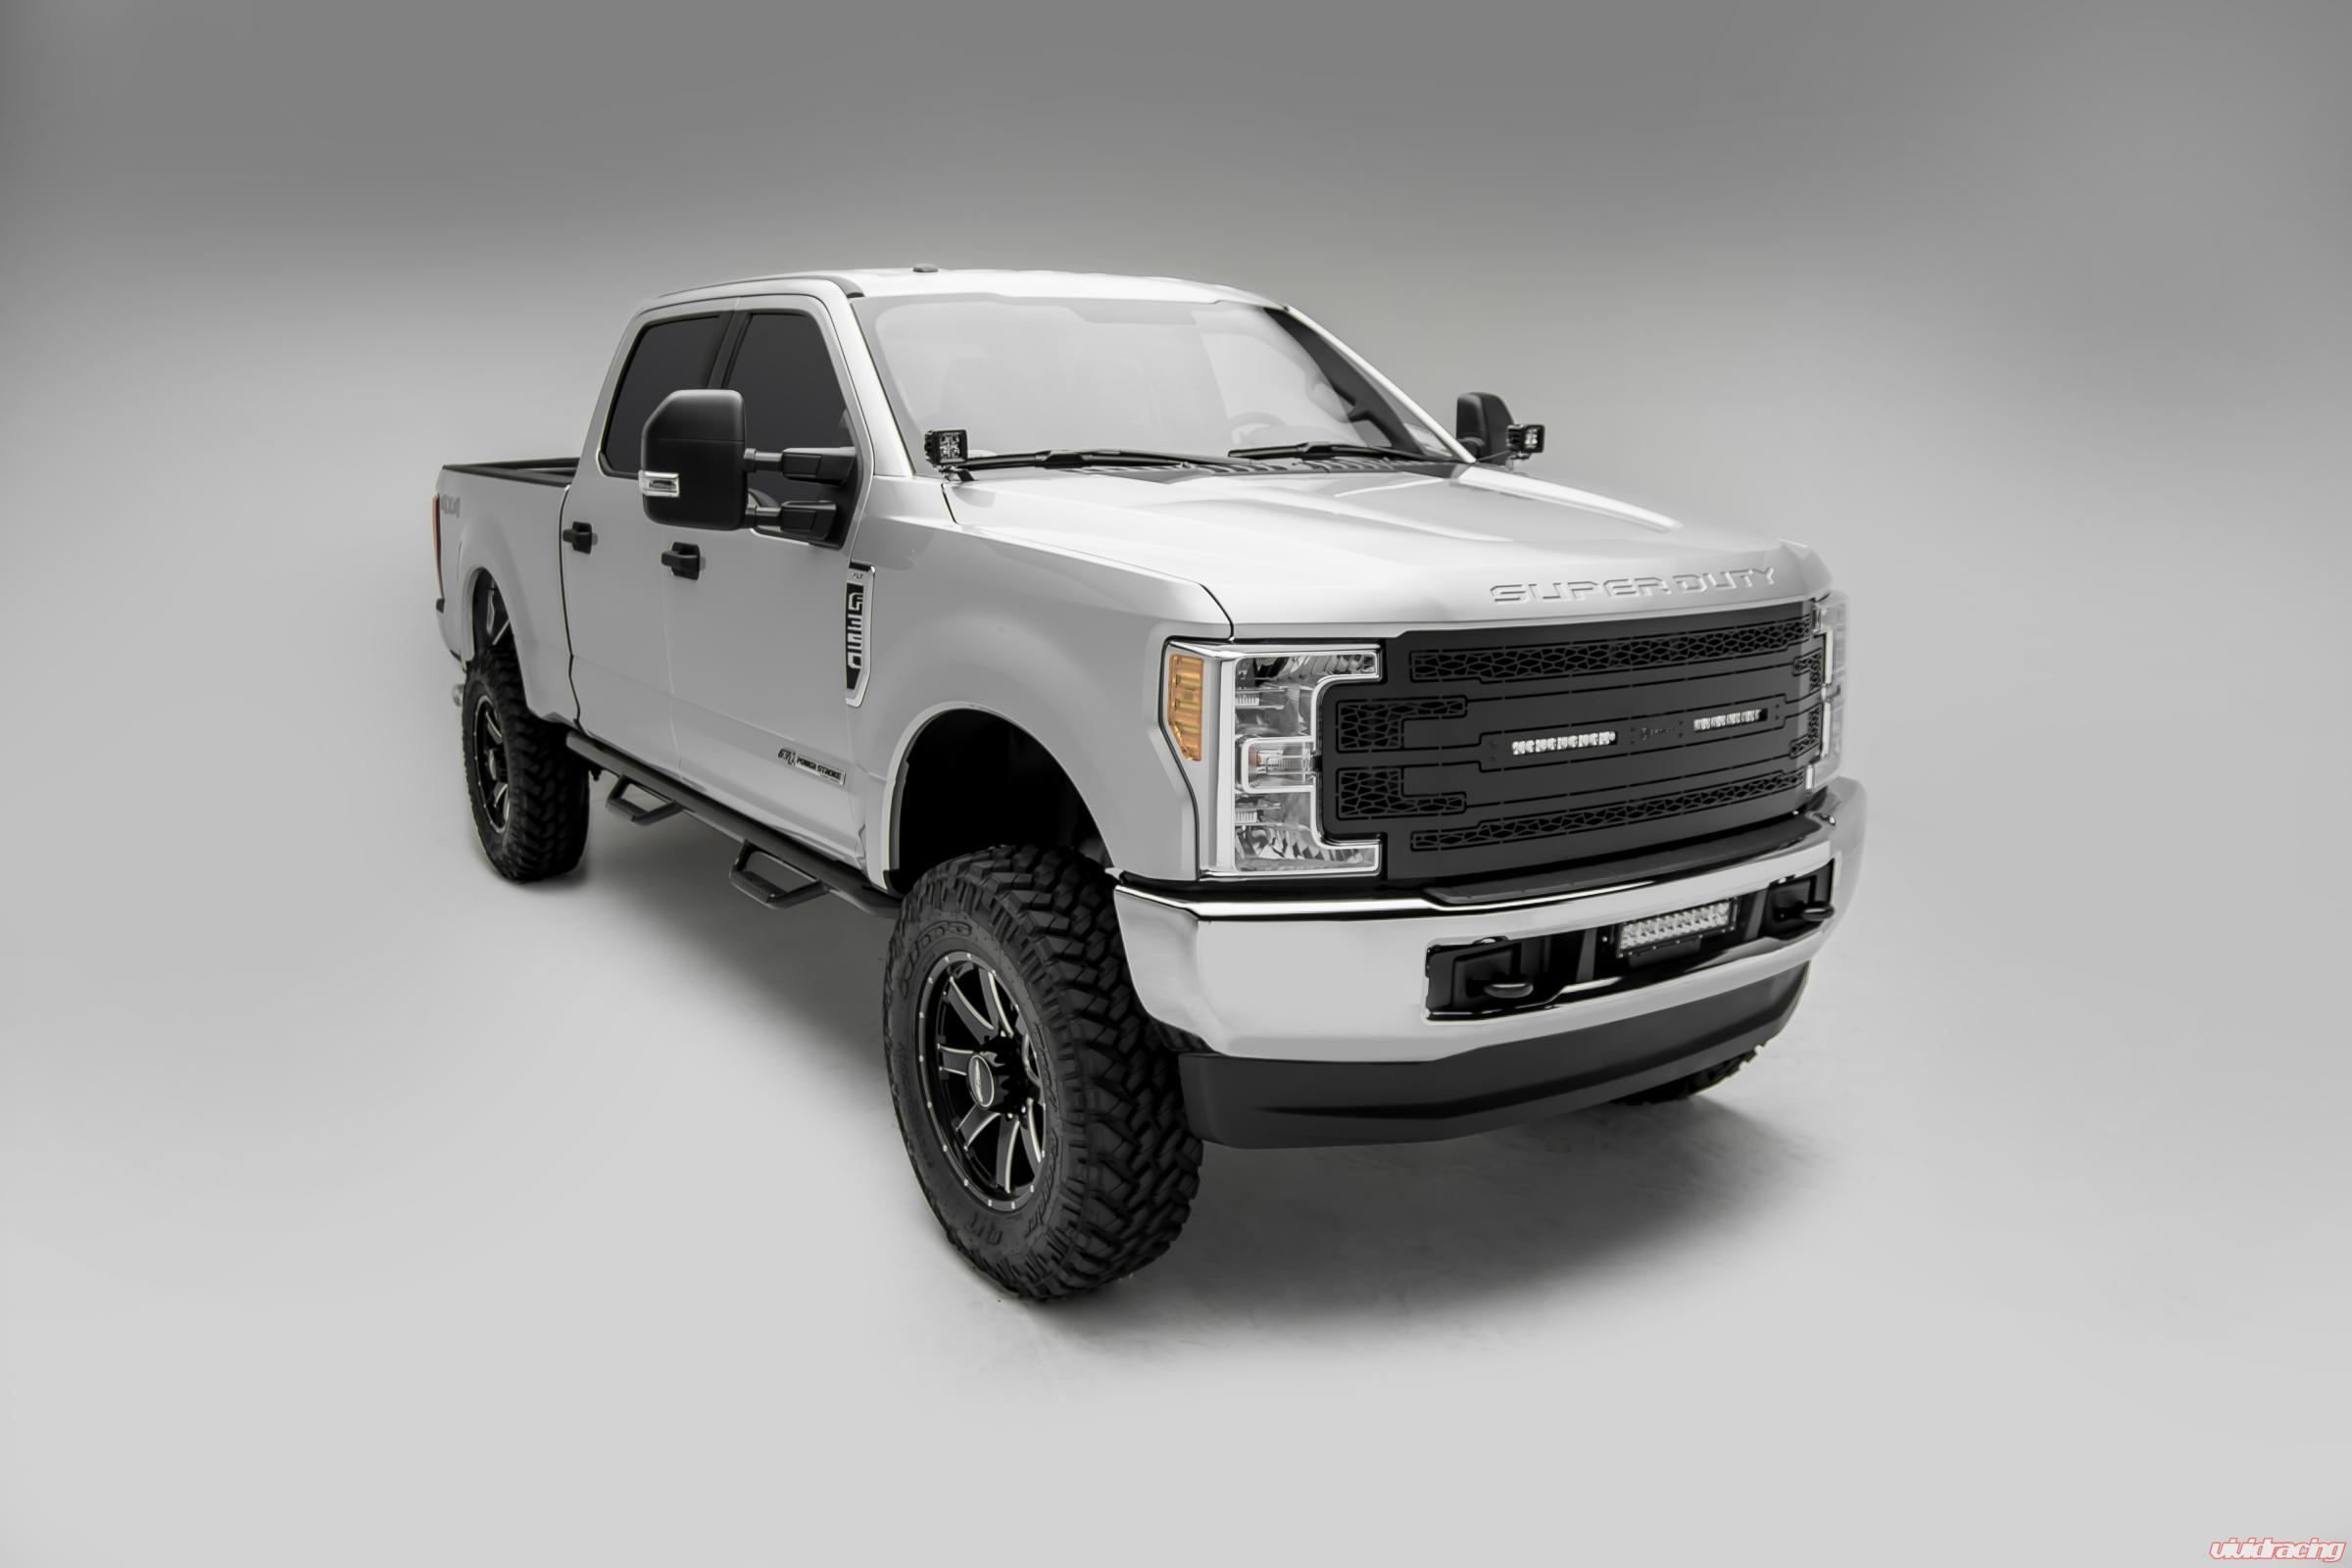 Z325471-Kit | Lower Bumper Mount Kit 2017 F-250/F-350 Superduty W/12 on ford f250 control module, ford f250 control box, hummer h2 wiring harness, ford f250 overdrive switch, ford f250 switches, ford f250 temp sensor, pontiac grand am wiring harness, ford f250 air filter housing, ford f250 distributor, ford f250 seat, ford f250 hub caps, ford f250 ignition module, ford f250 neutral safety switch, ford f250 electrical schematic, suzuki grand vitara wiring harness, ford f250 master cylinder, honda s2000 wiring harness, dodge ram 2500 wiring harness, kia sportage wiring harness, ford f250 fuel pressure regulator,